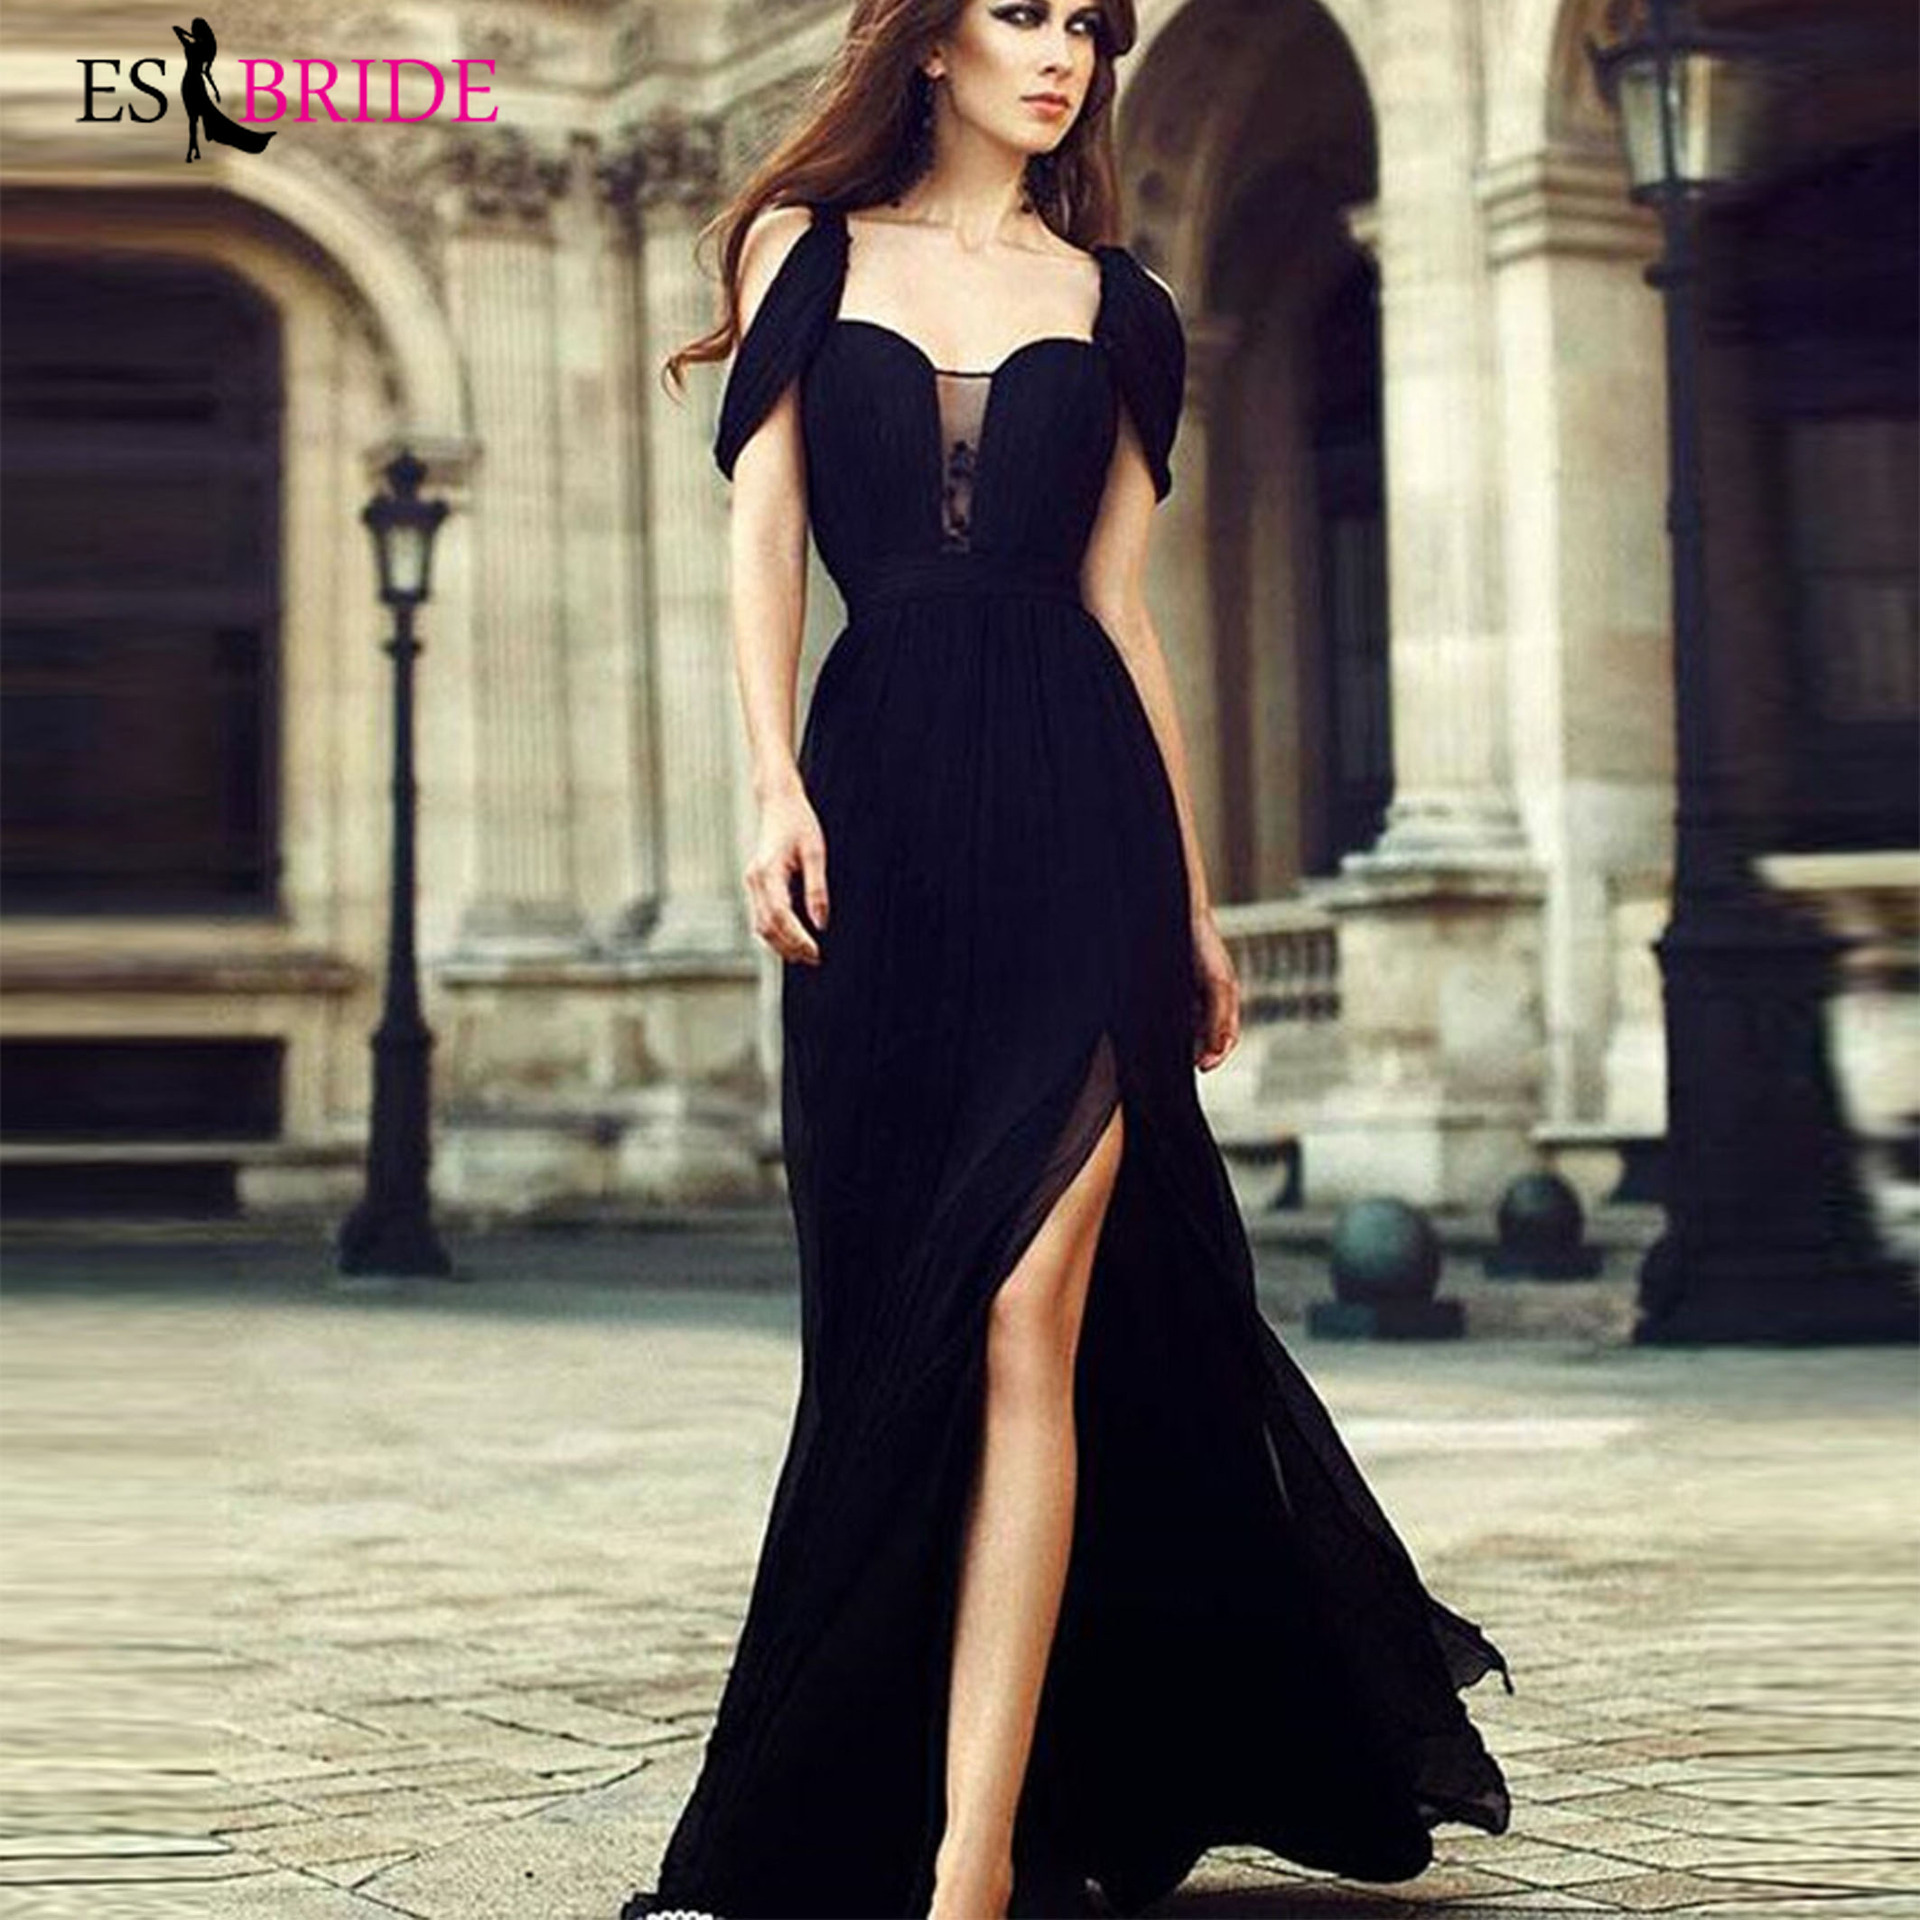 Black Simple Evening Dresses Long Women Elegant Formal Evening Dress Lace Mermaid Wedding Guest Dress Party Wedding Gown ES1672